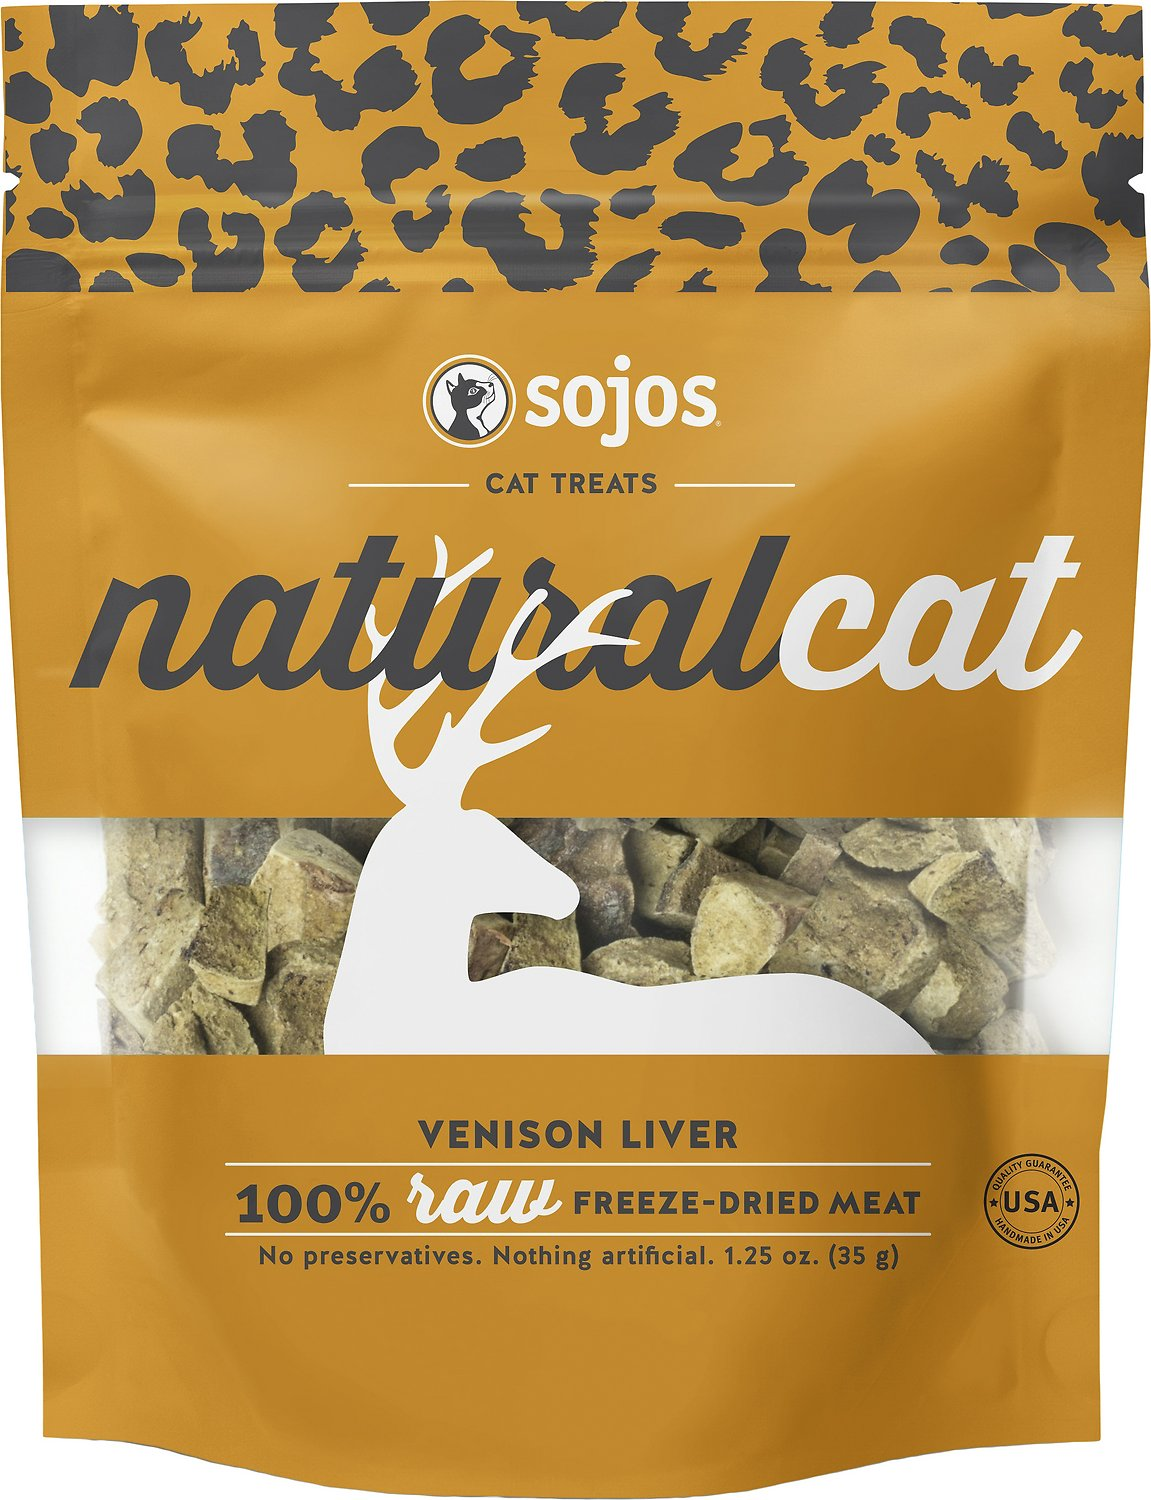 Sojos NaturalCat Venison Liver Freeze-Dried Cat Treats, 1.25-oz bag